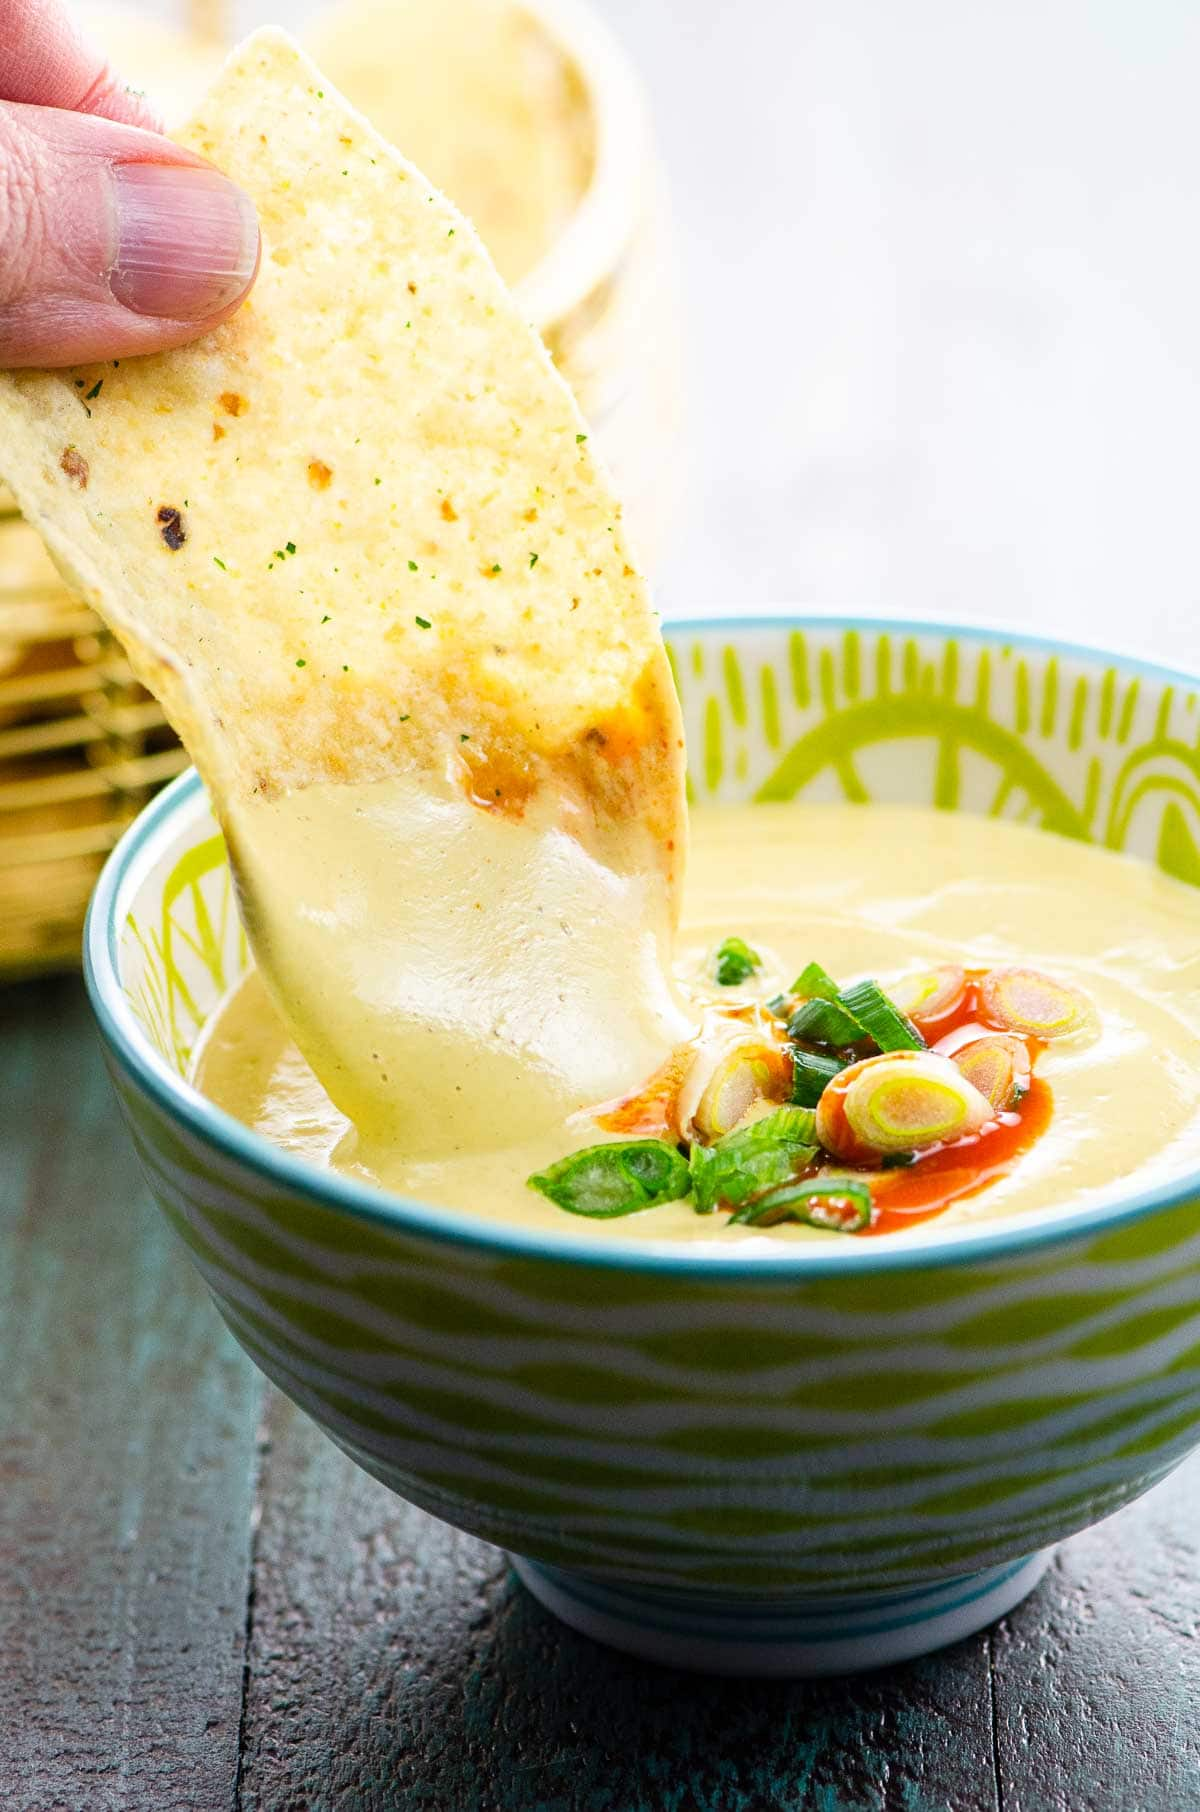 dipping into a bowl of vegan queso with tortilla chips